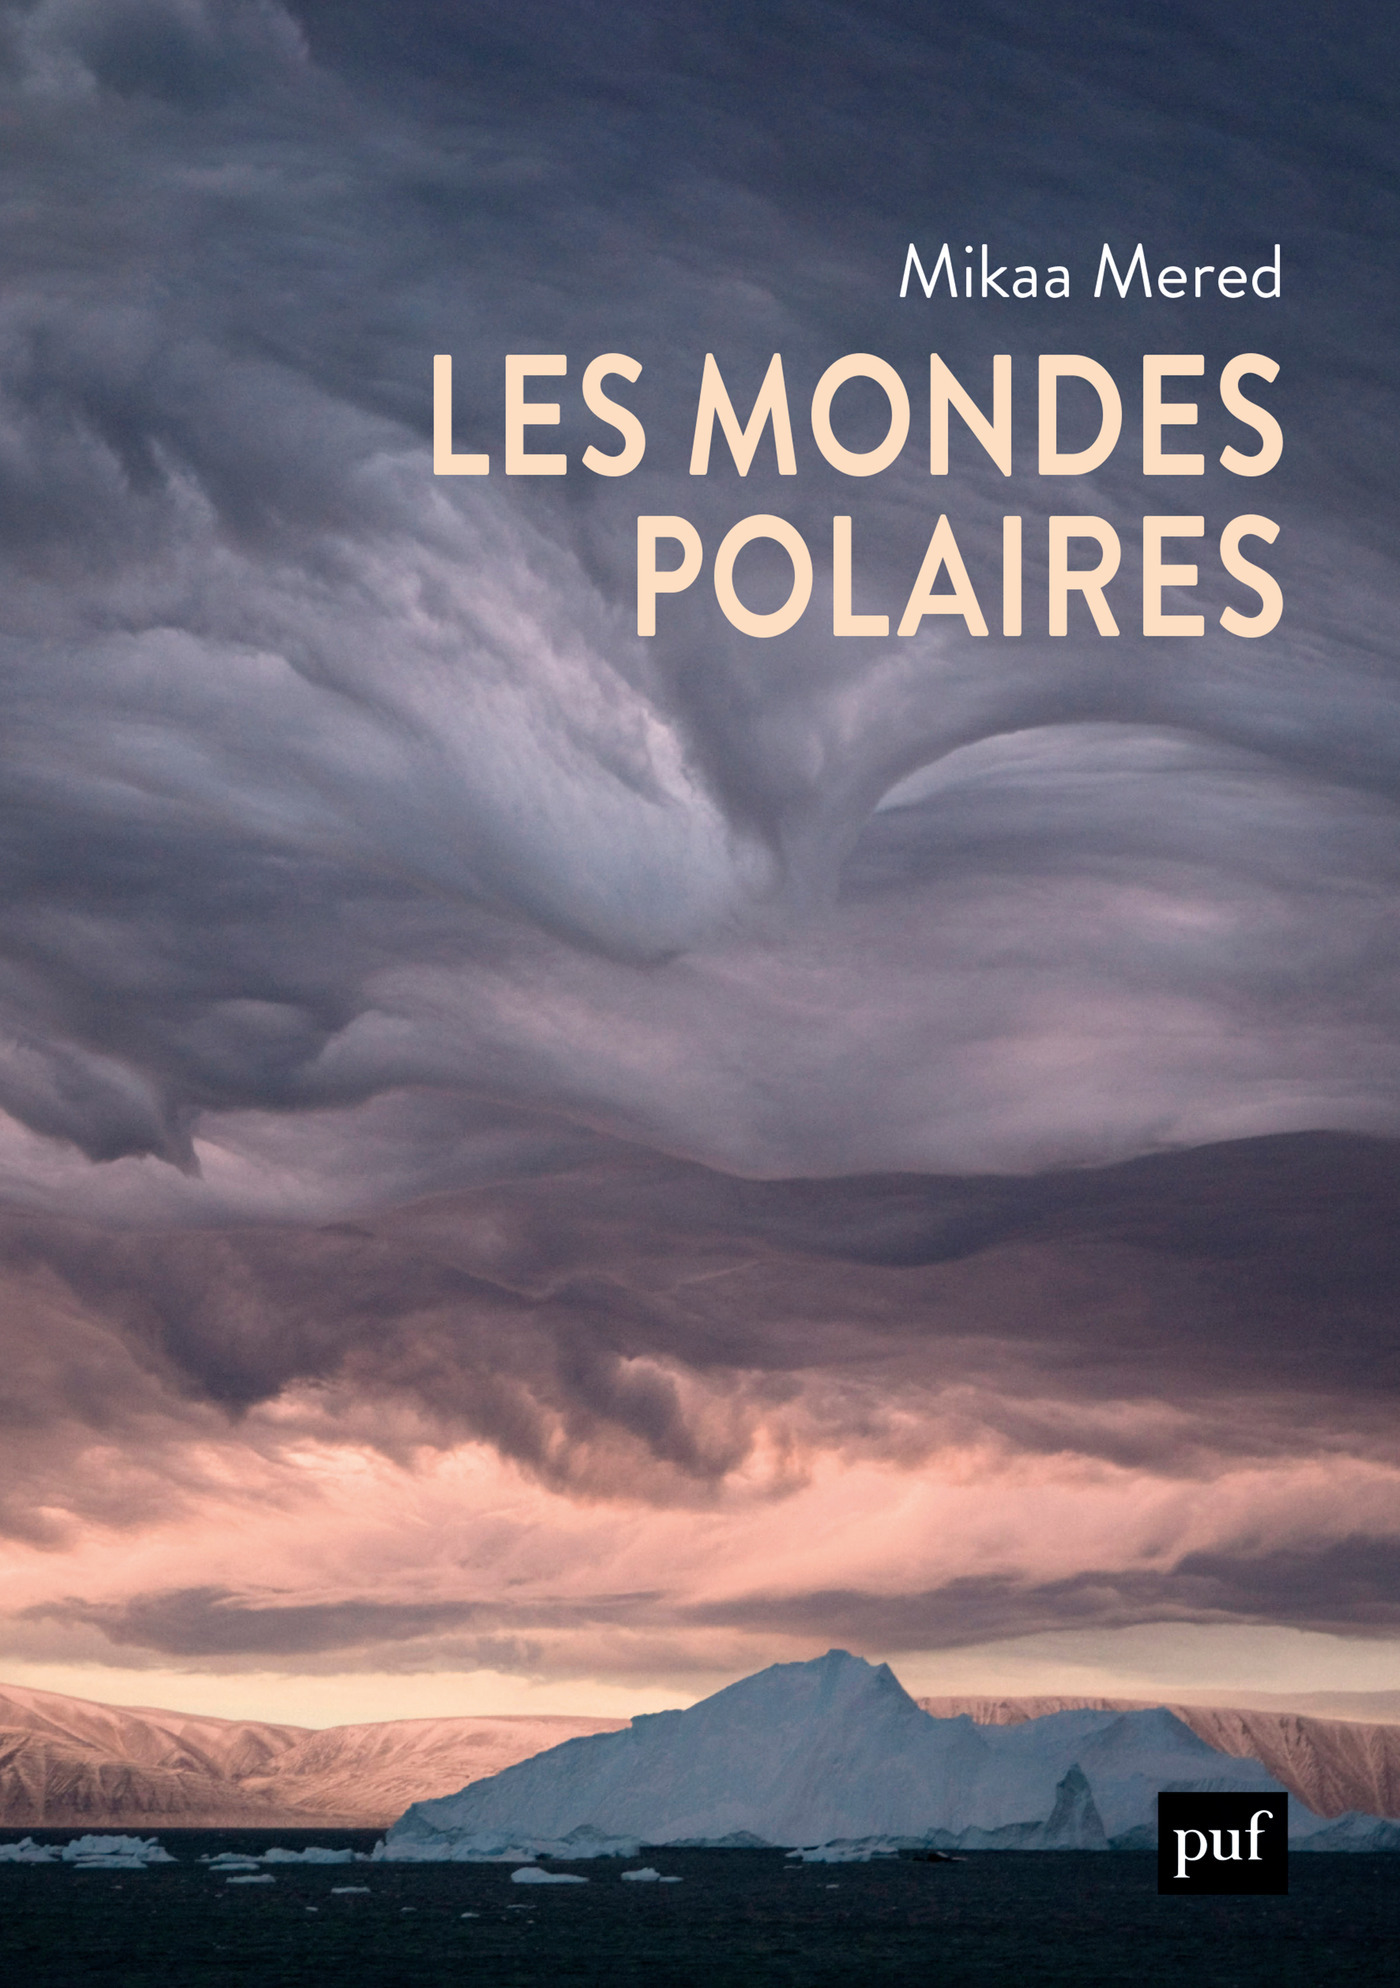 Les mondes polaires  - Mikaa Mered